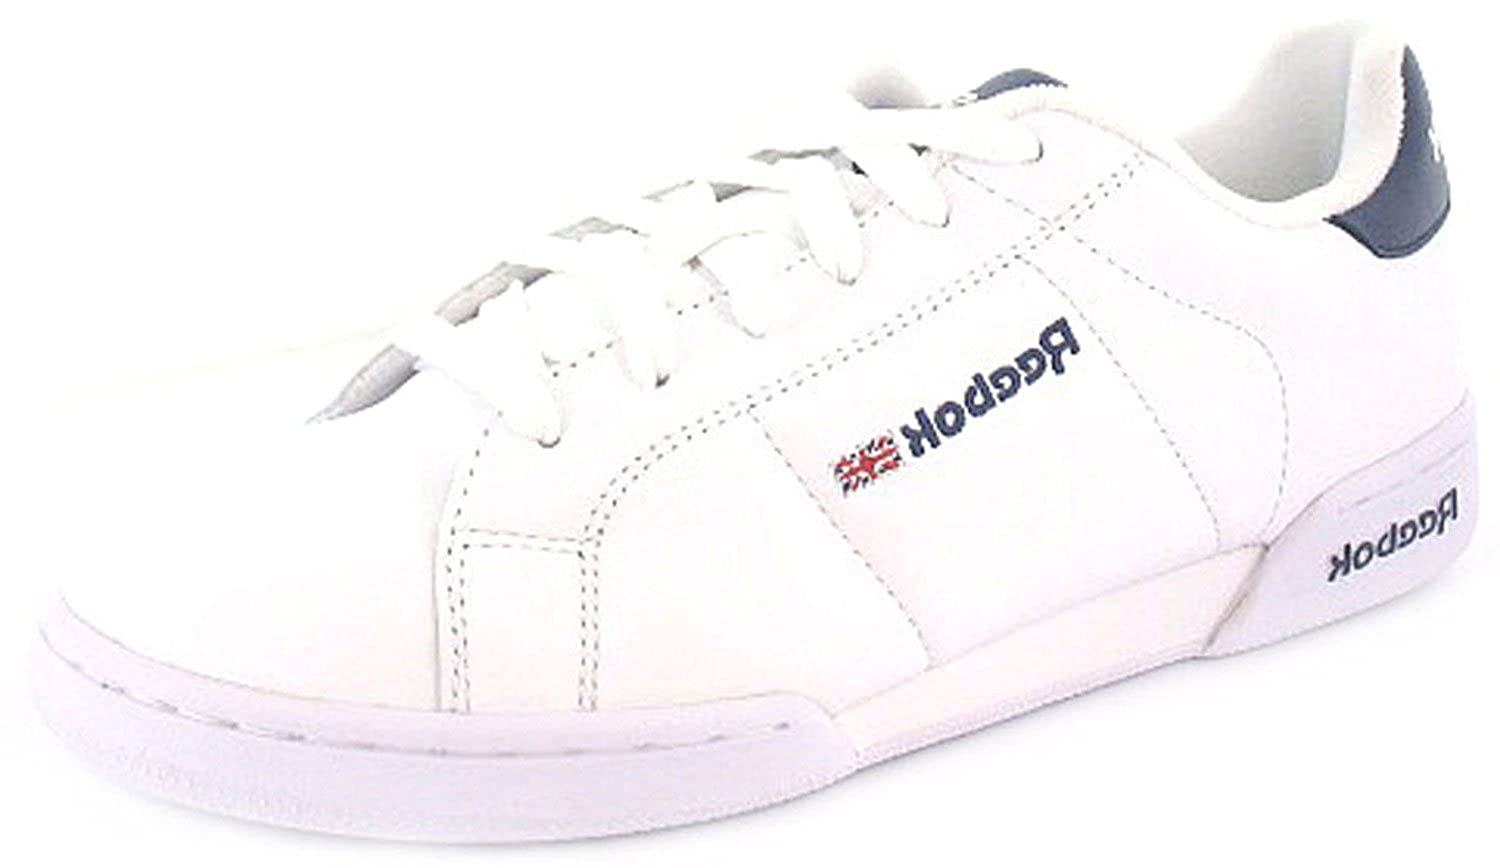 b9116b1bf90 New Ladies Womens White Reebok Classic Tennis Shoes Trainers. - White Classic  Navy - UK SIZE 6.5  Amazon.co.uk  Shoes   Bags